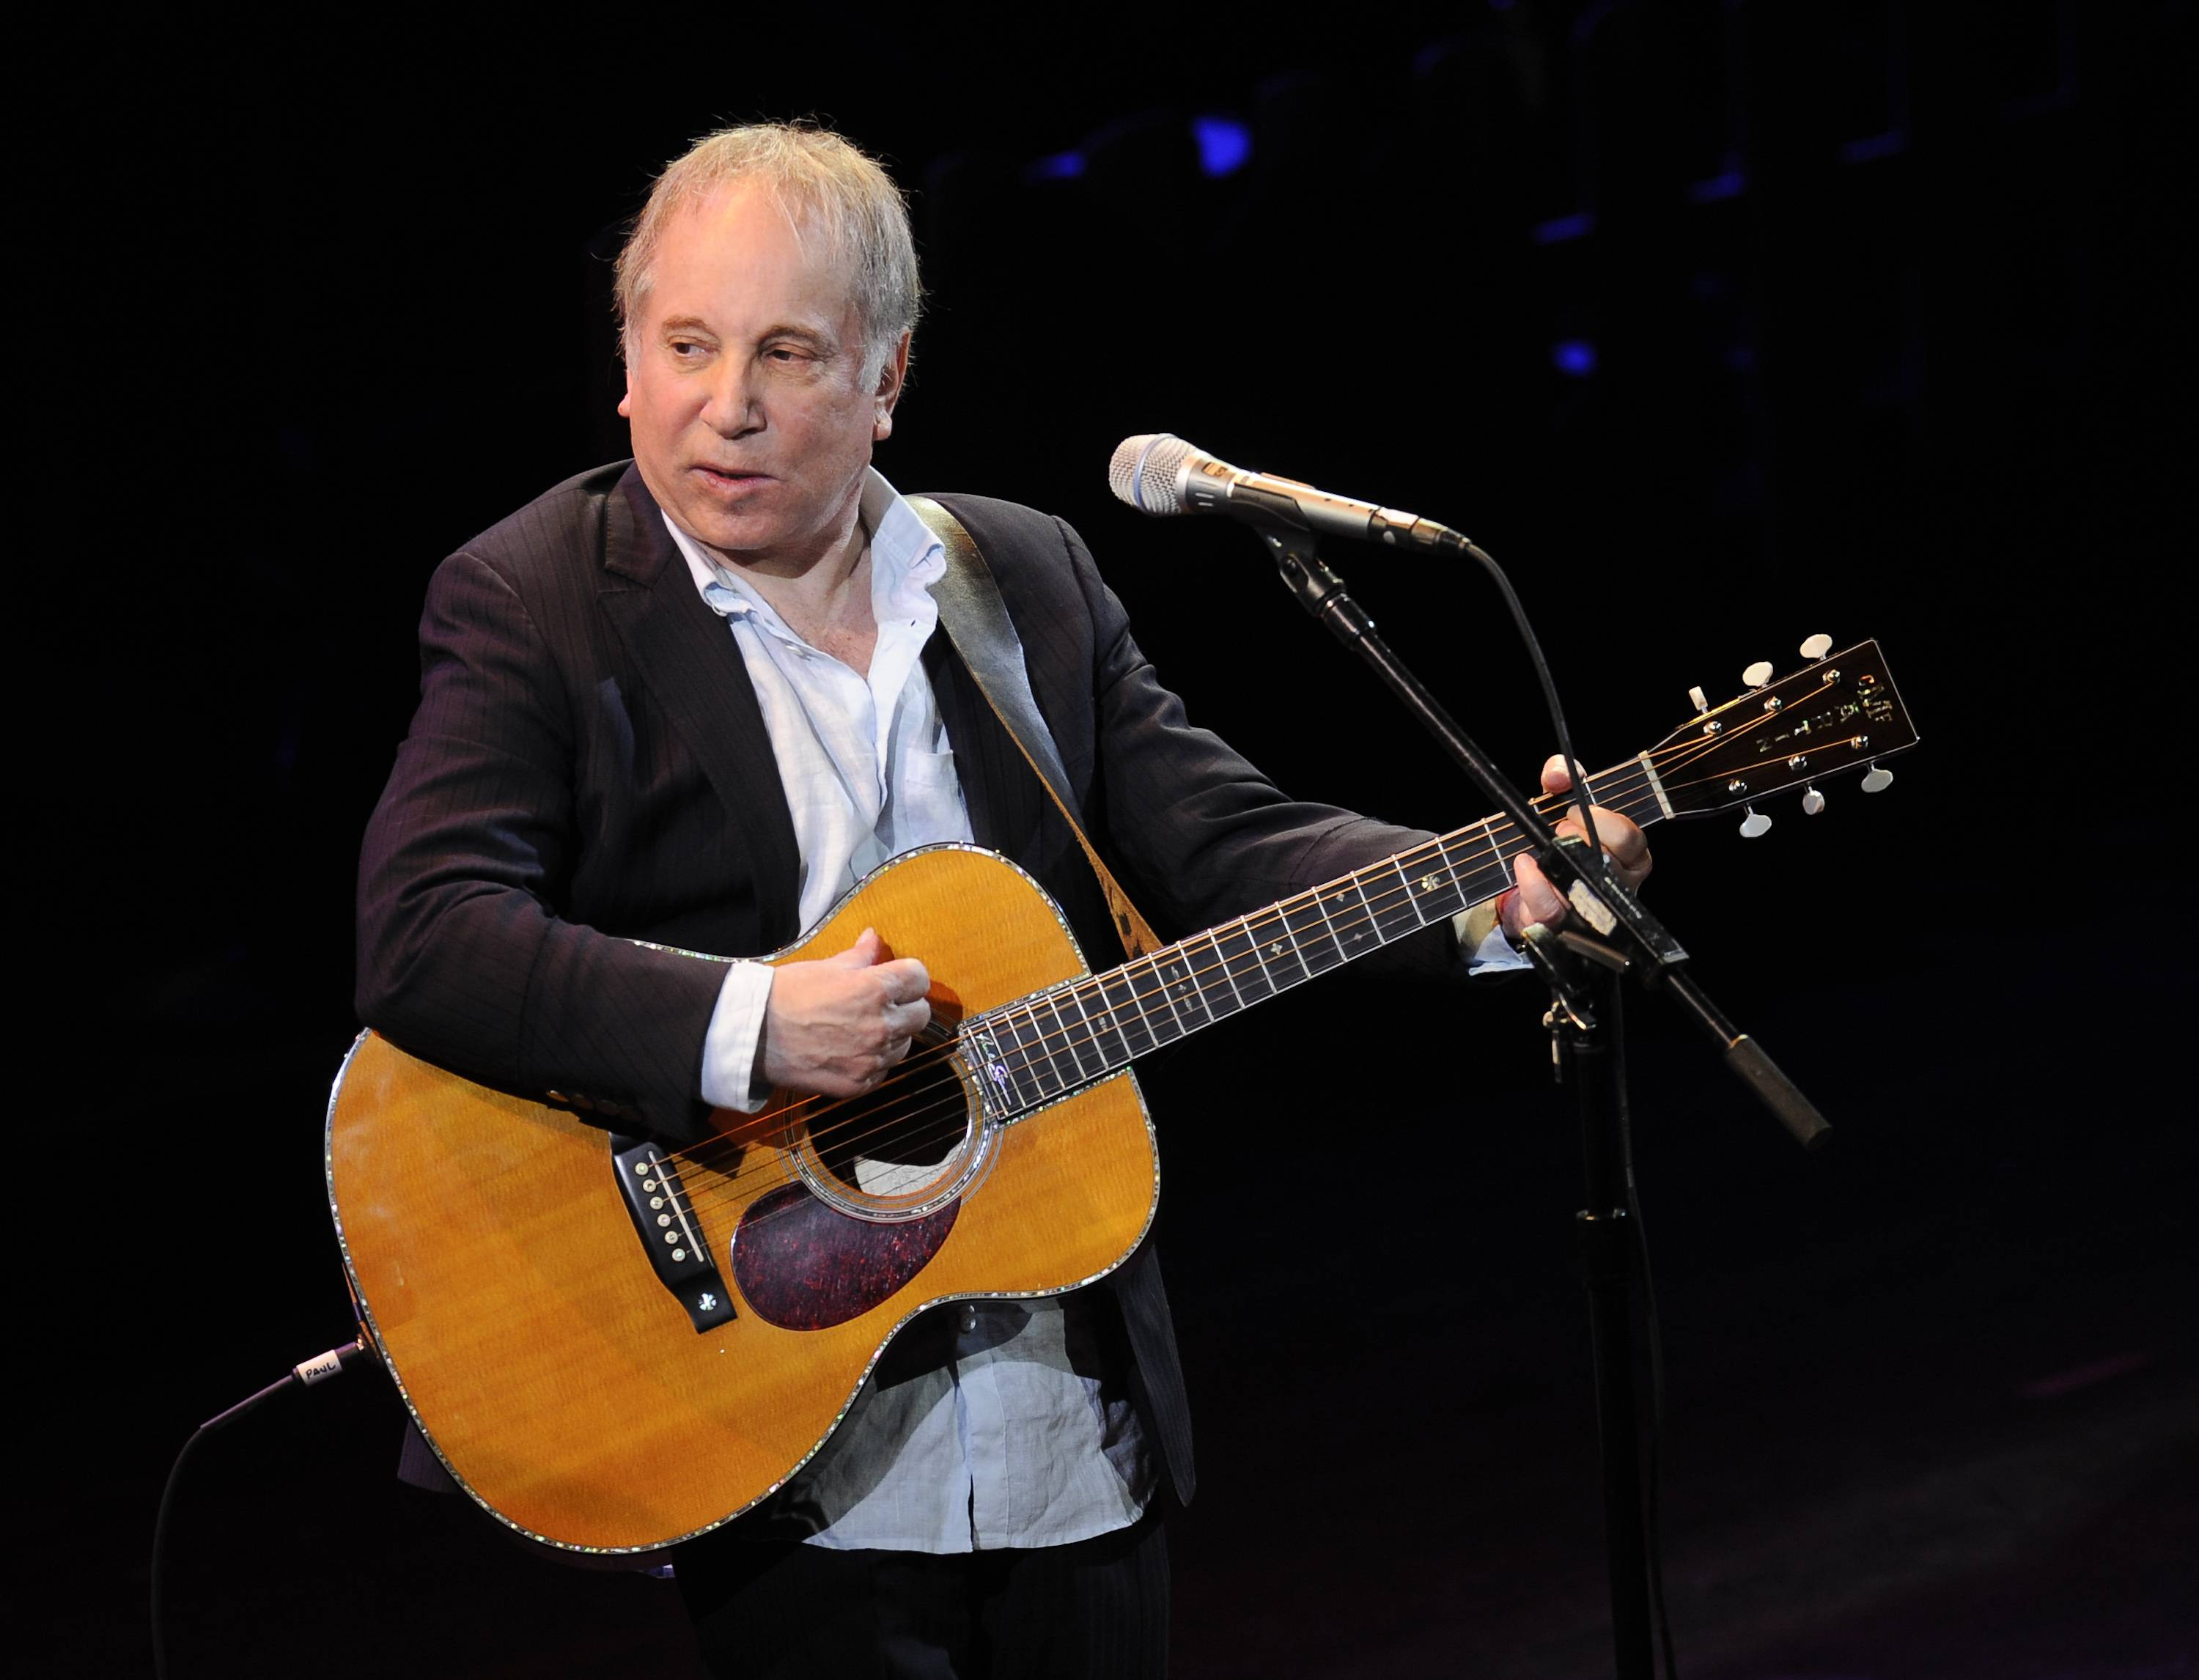 Police in Connecticut say Paul Simon and his wife, singer Edie Brickell, have been arrested on disorderly conduct charges. A New Canaan police spokeswoman provided no other details, except to say the arrests stemmed from an incident Saturday.